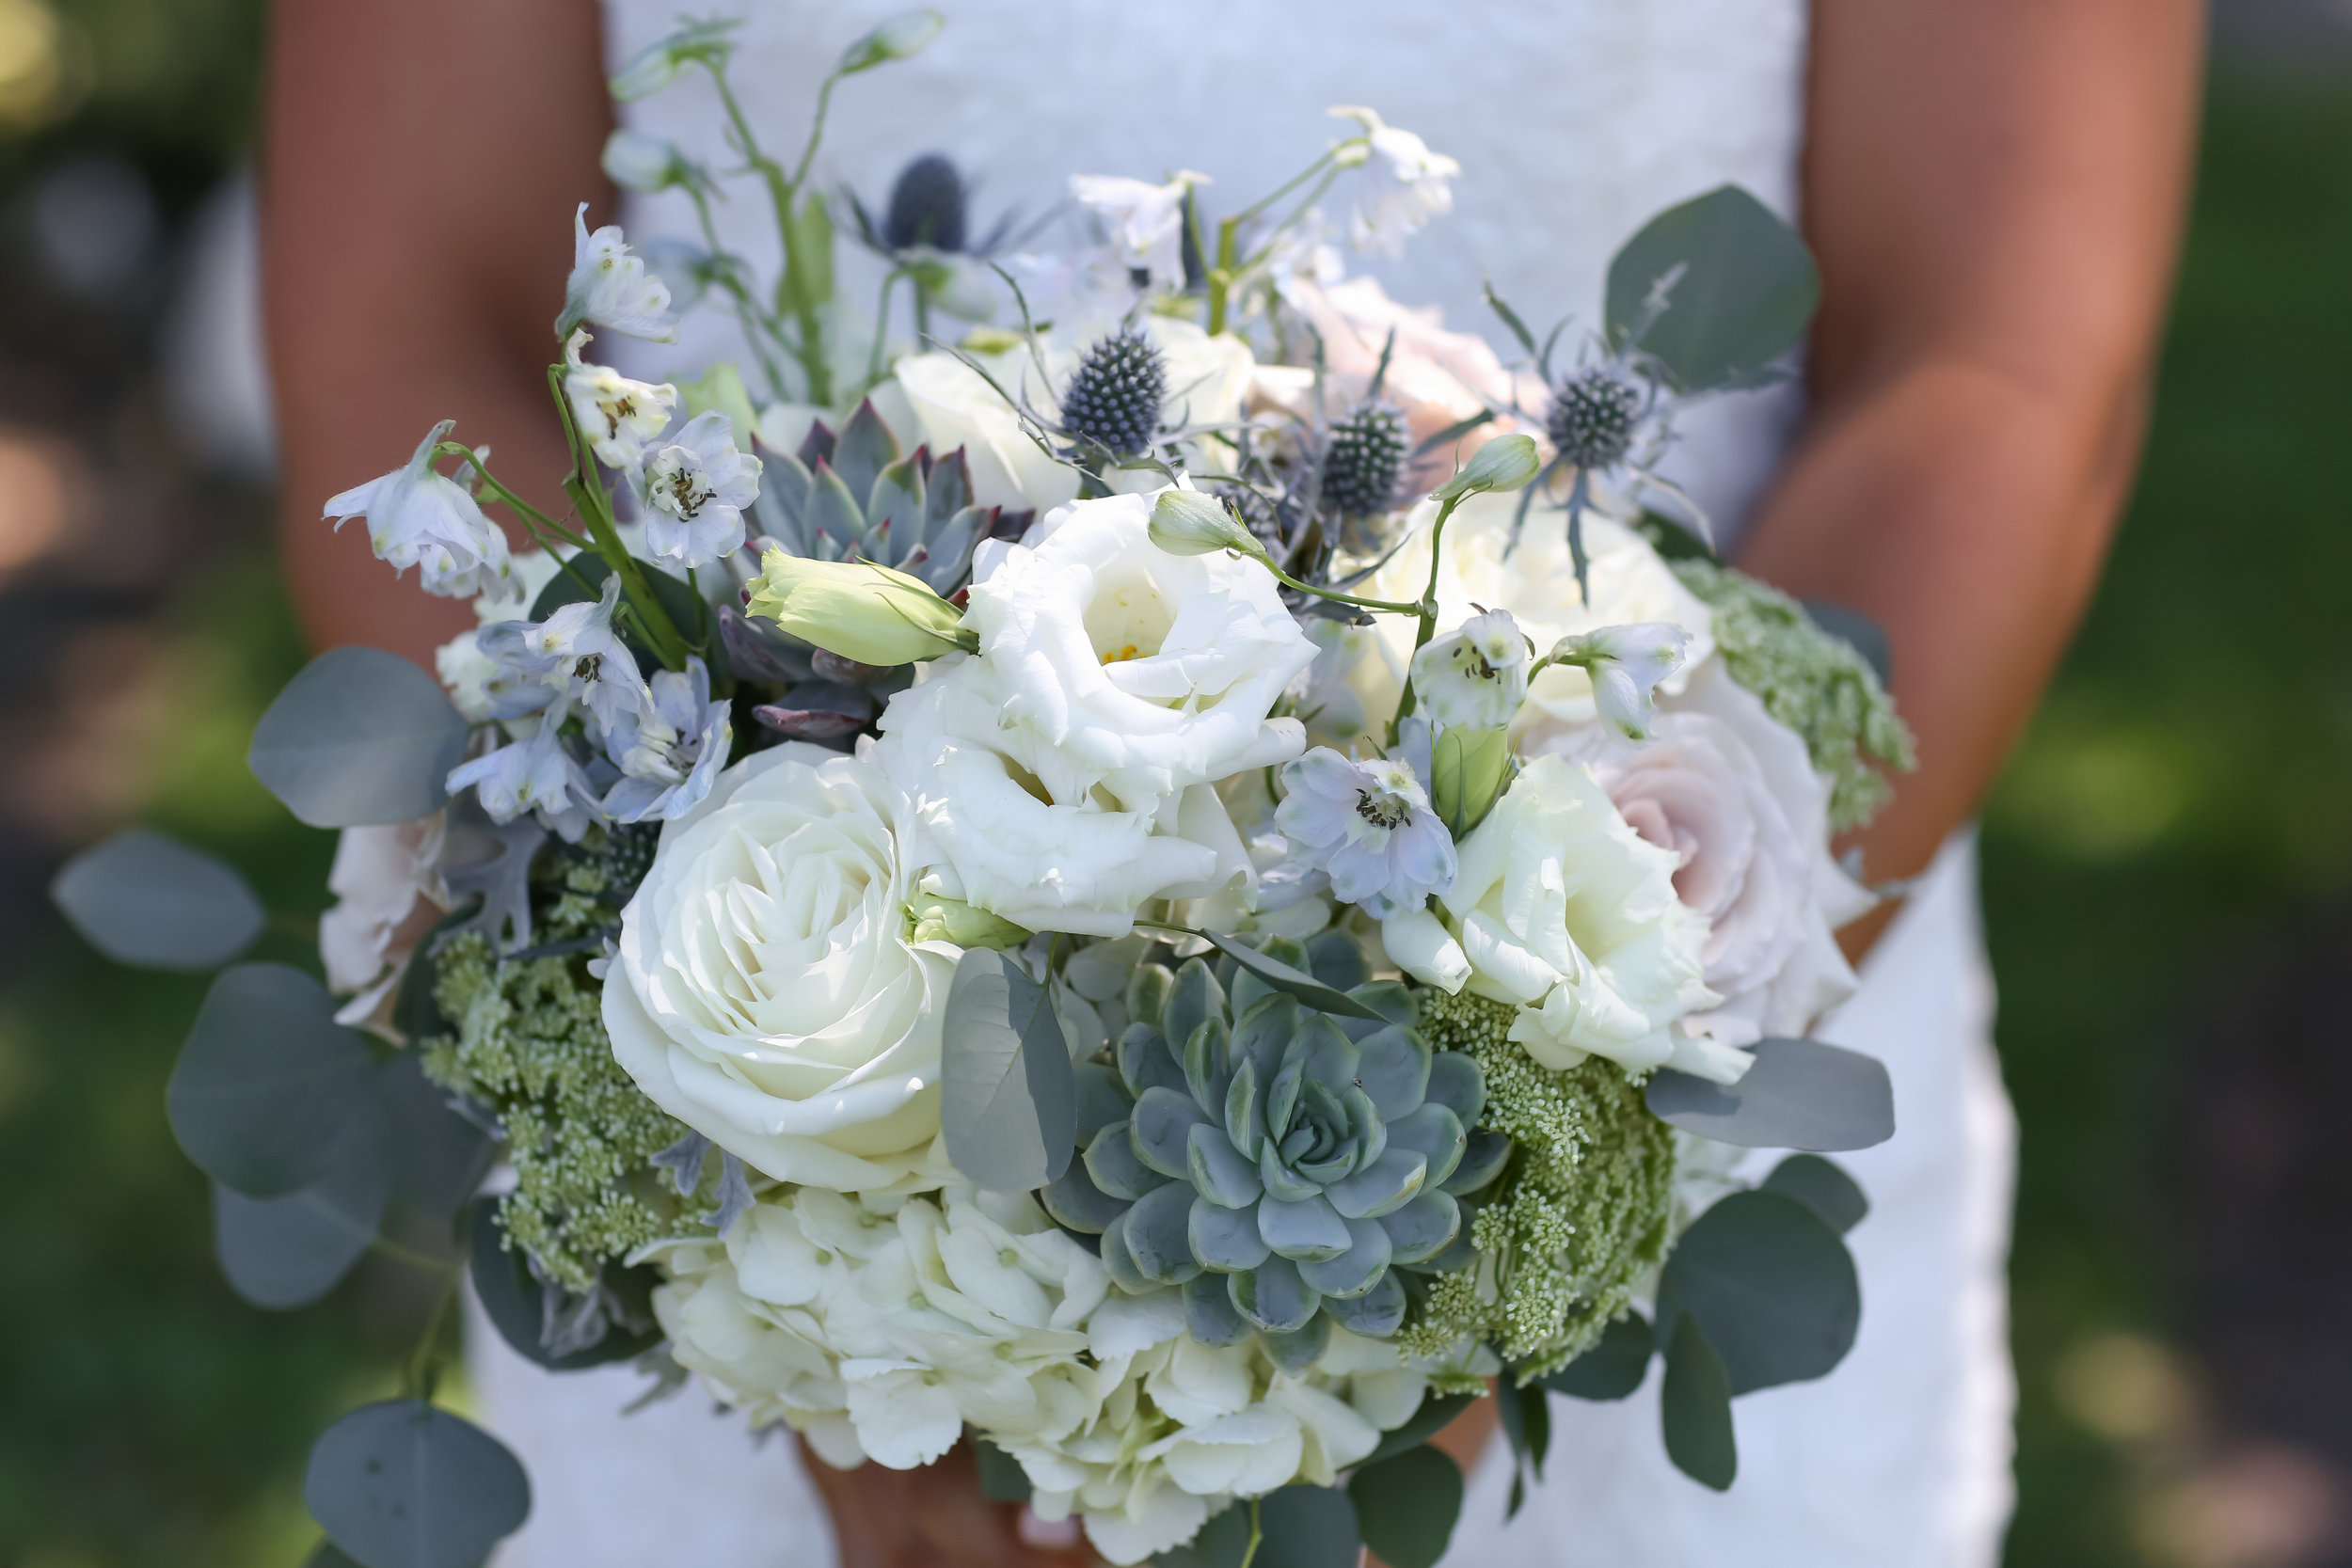 The bride's bouquet was wrapped with a sentimental piece of fabric from her grandmother's dress.